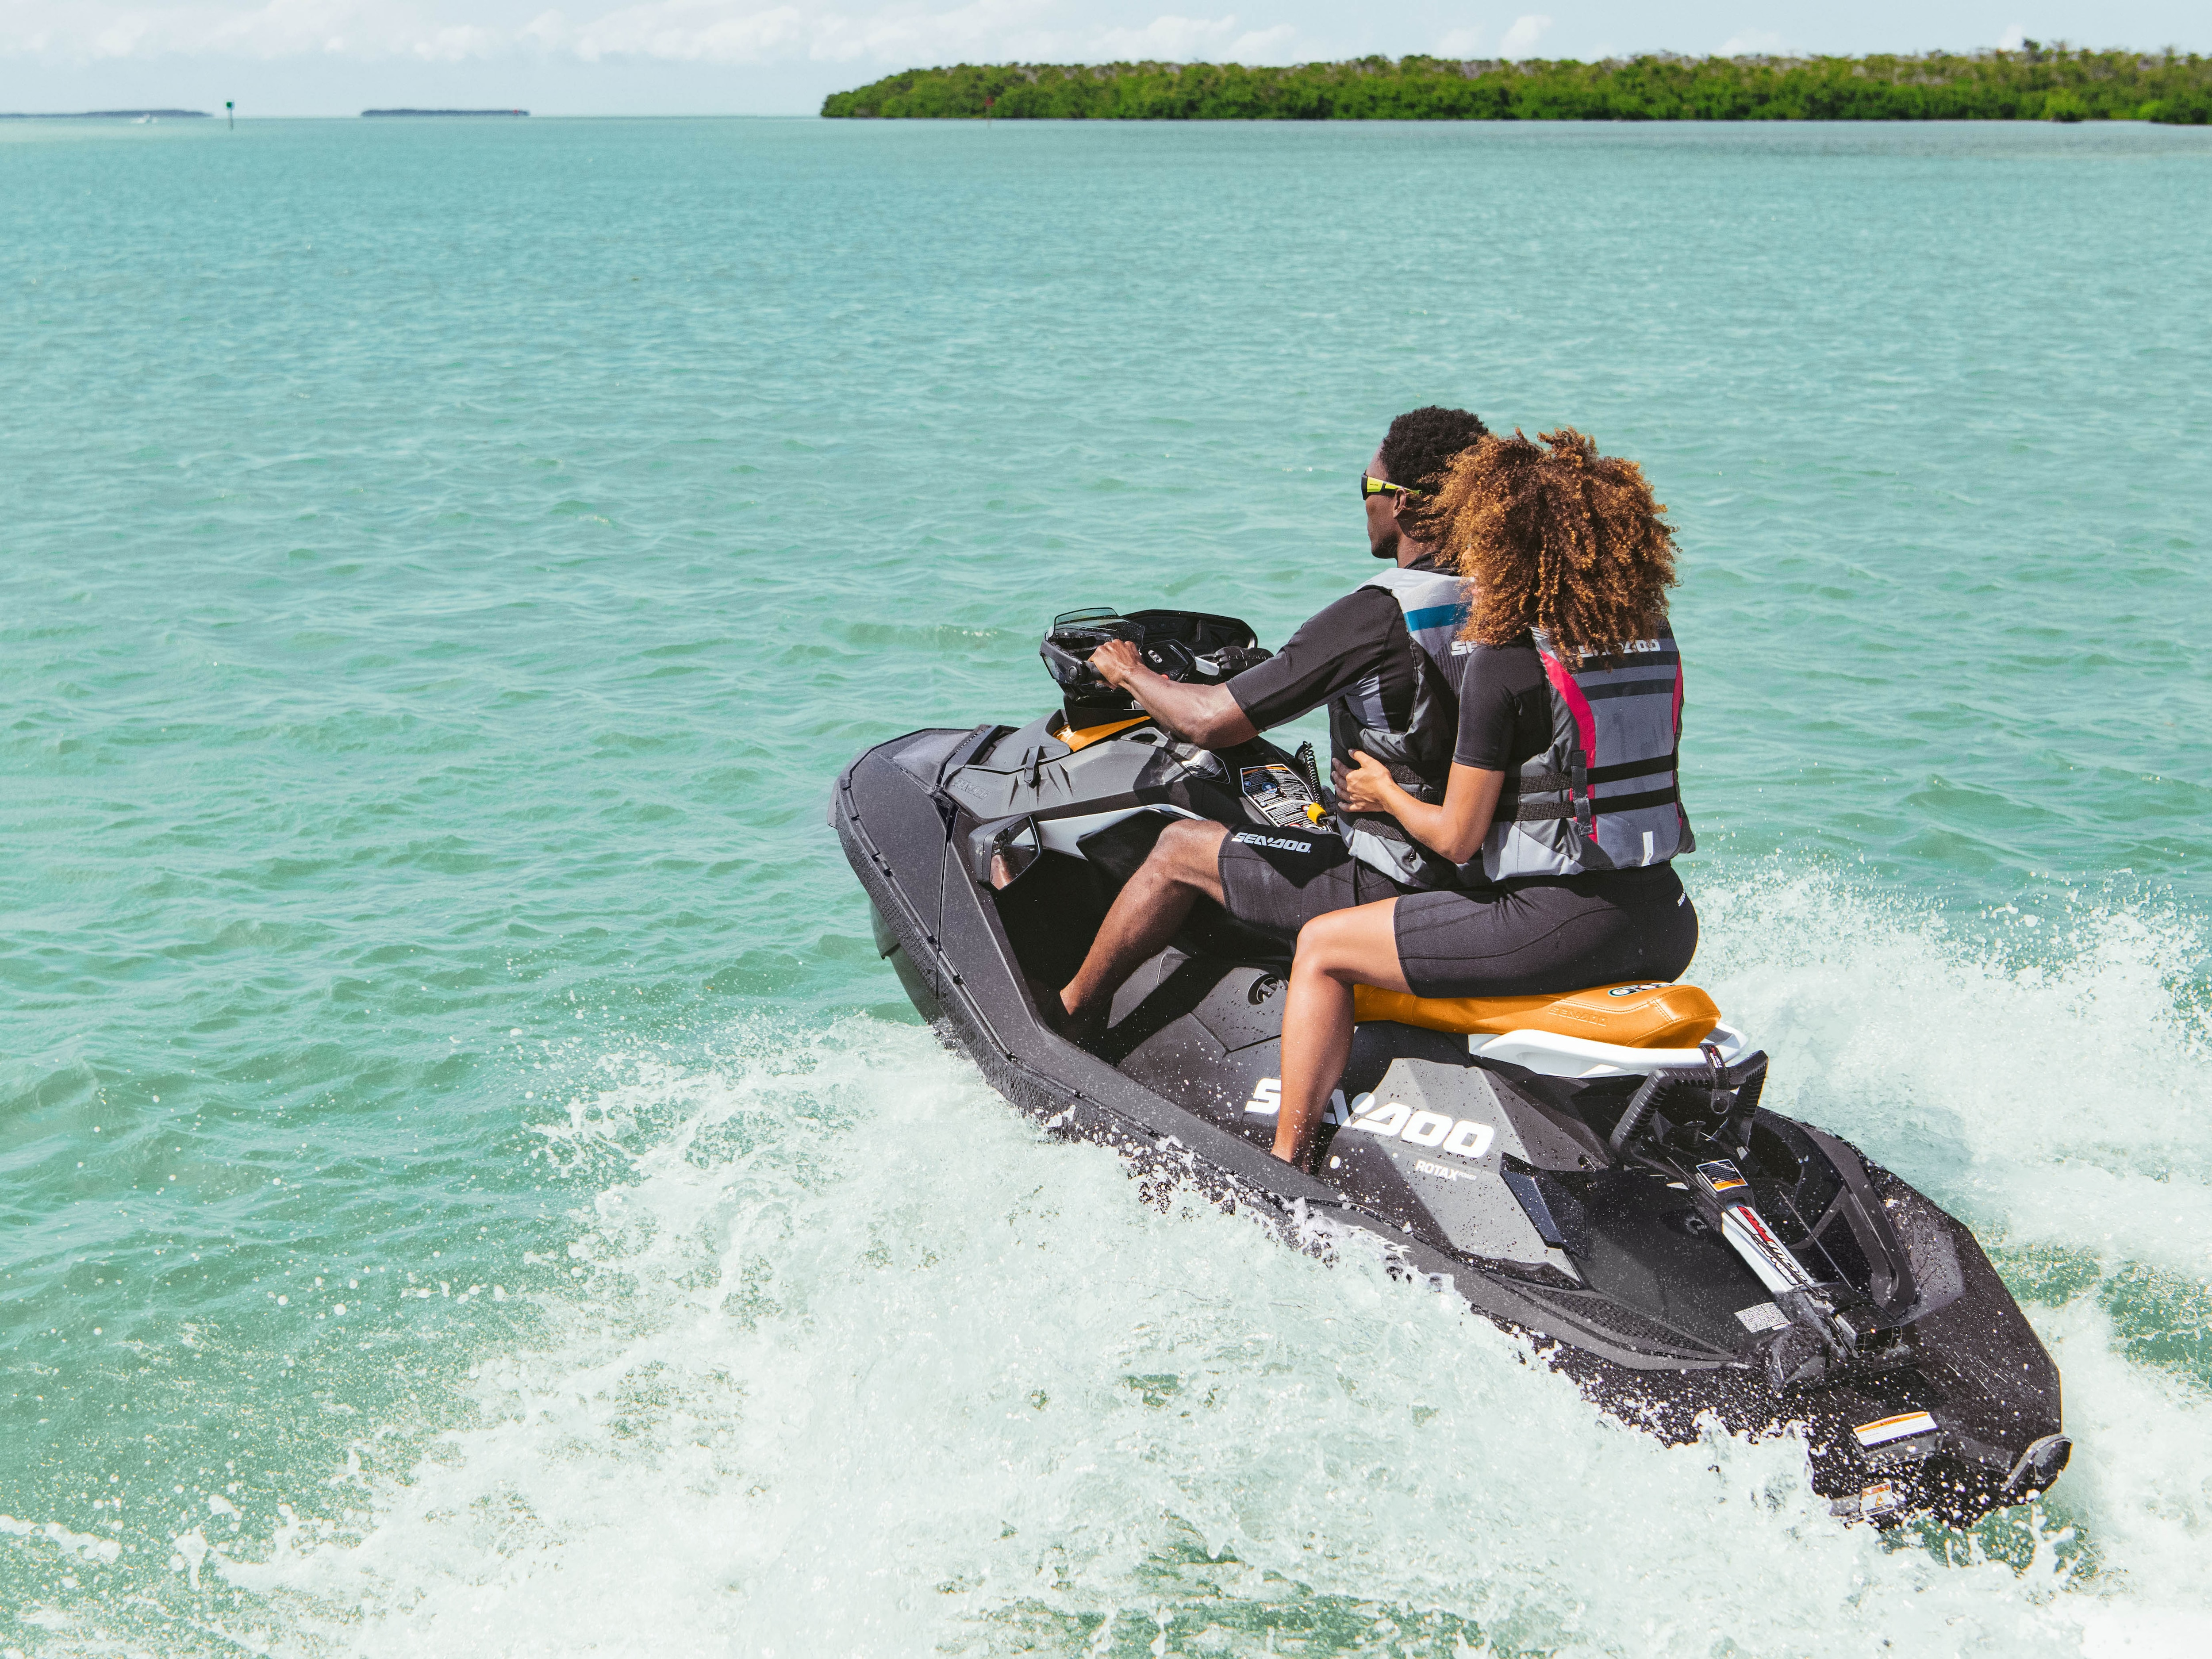 Couple riding a Sea-Doo Spark and enjoying a eco friendly pwc